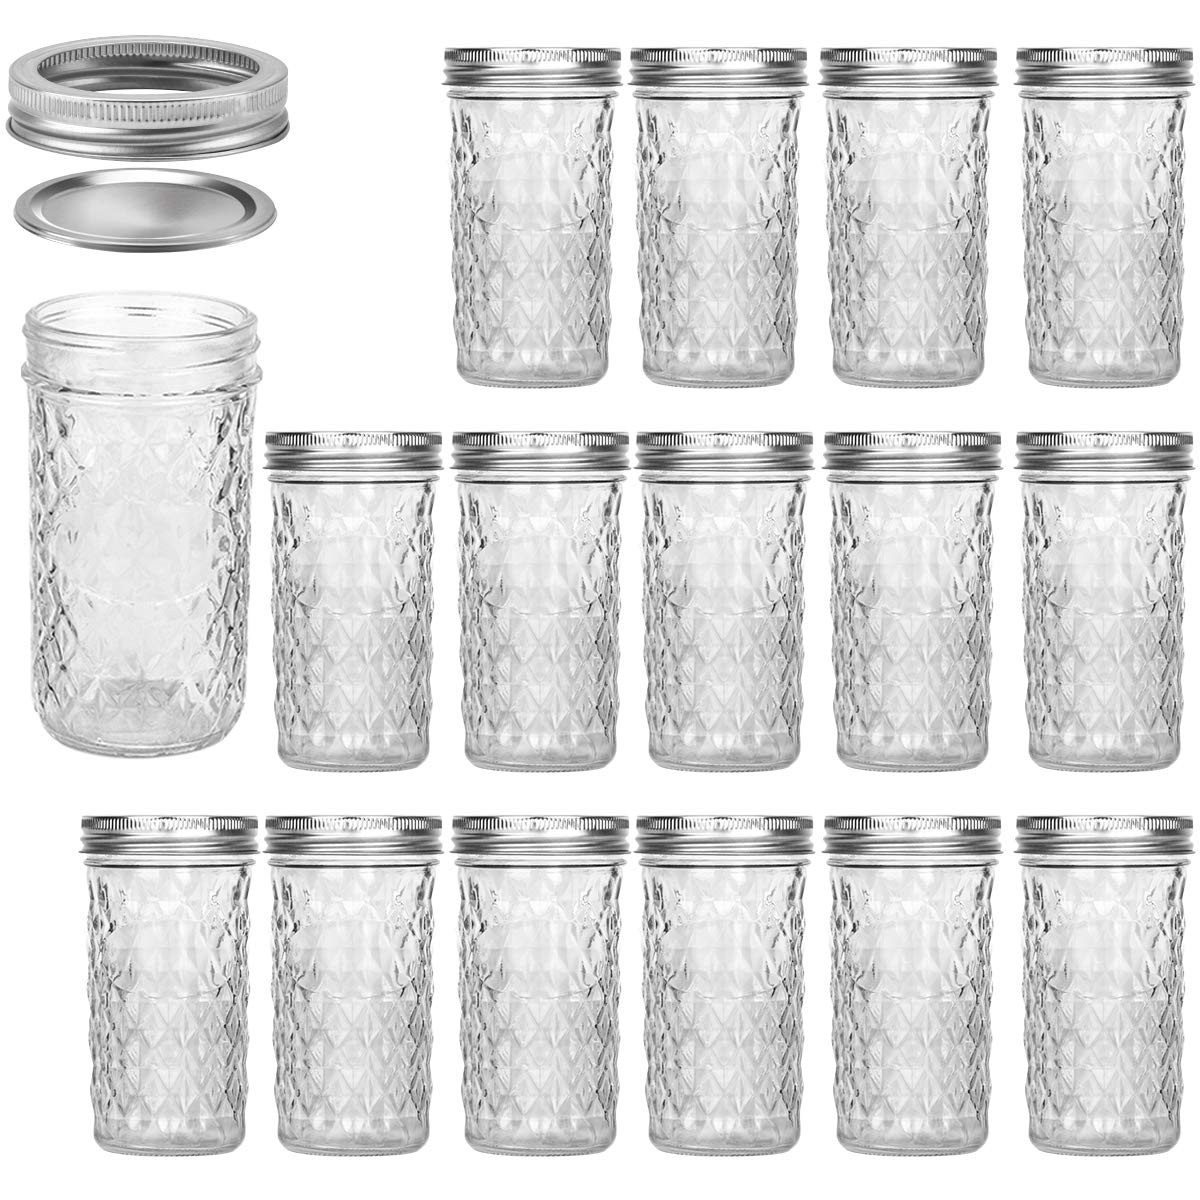 Mason Jars 12 OZ, VERONES Canning Jars Jelly Jars With Regular Lids, Ideal for Jam, Honey, Wedding Favors, Shower Favors, Baby Foods, 15 PACK by VERONES